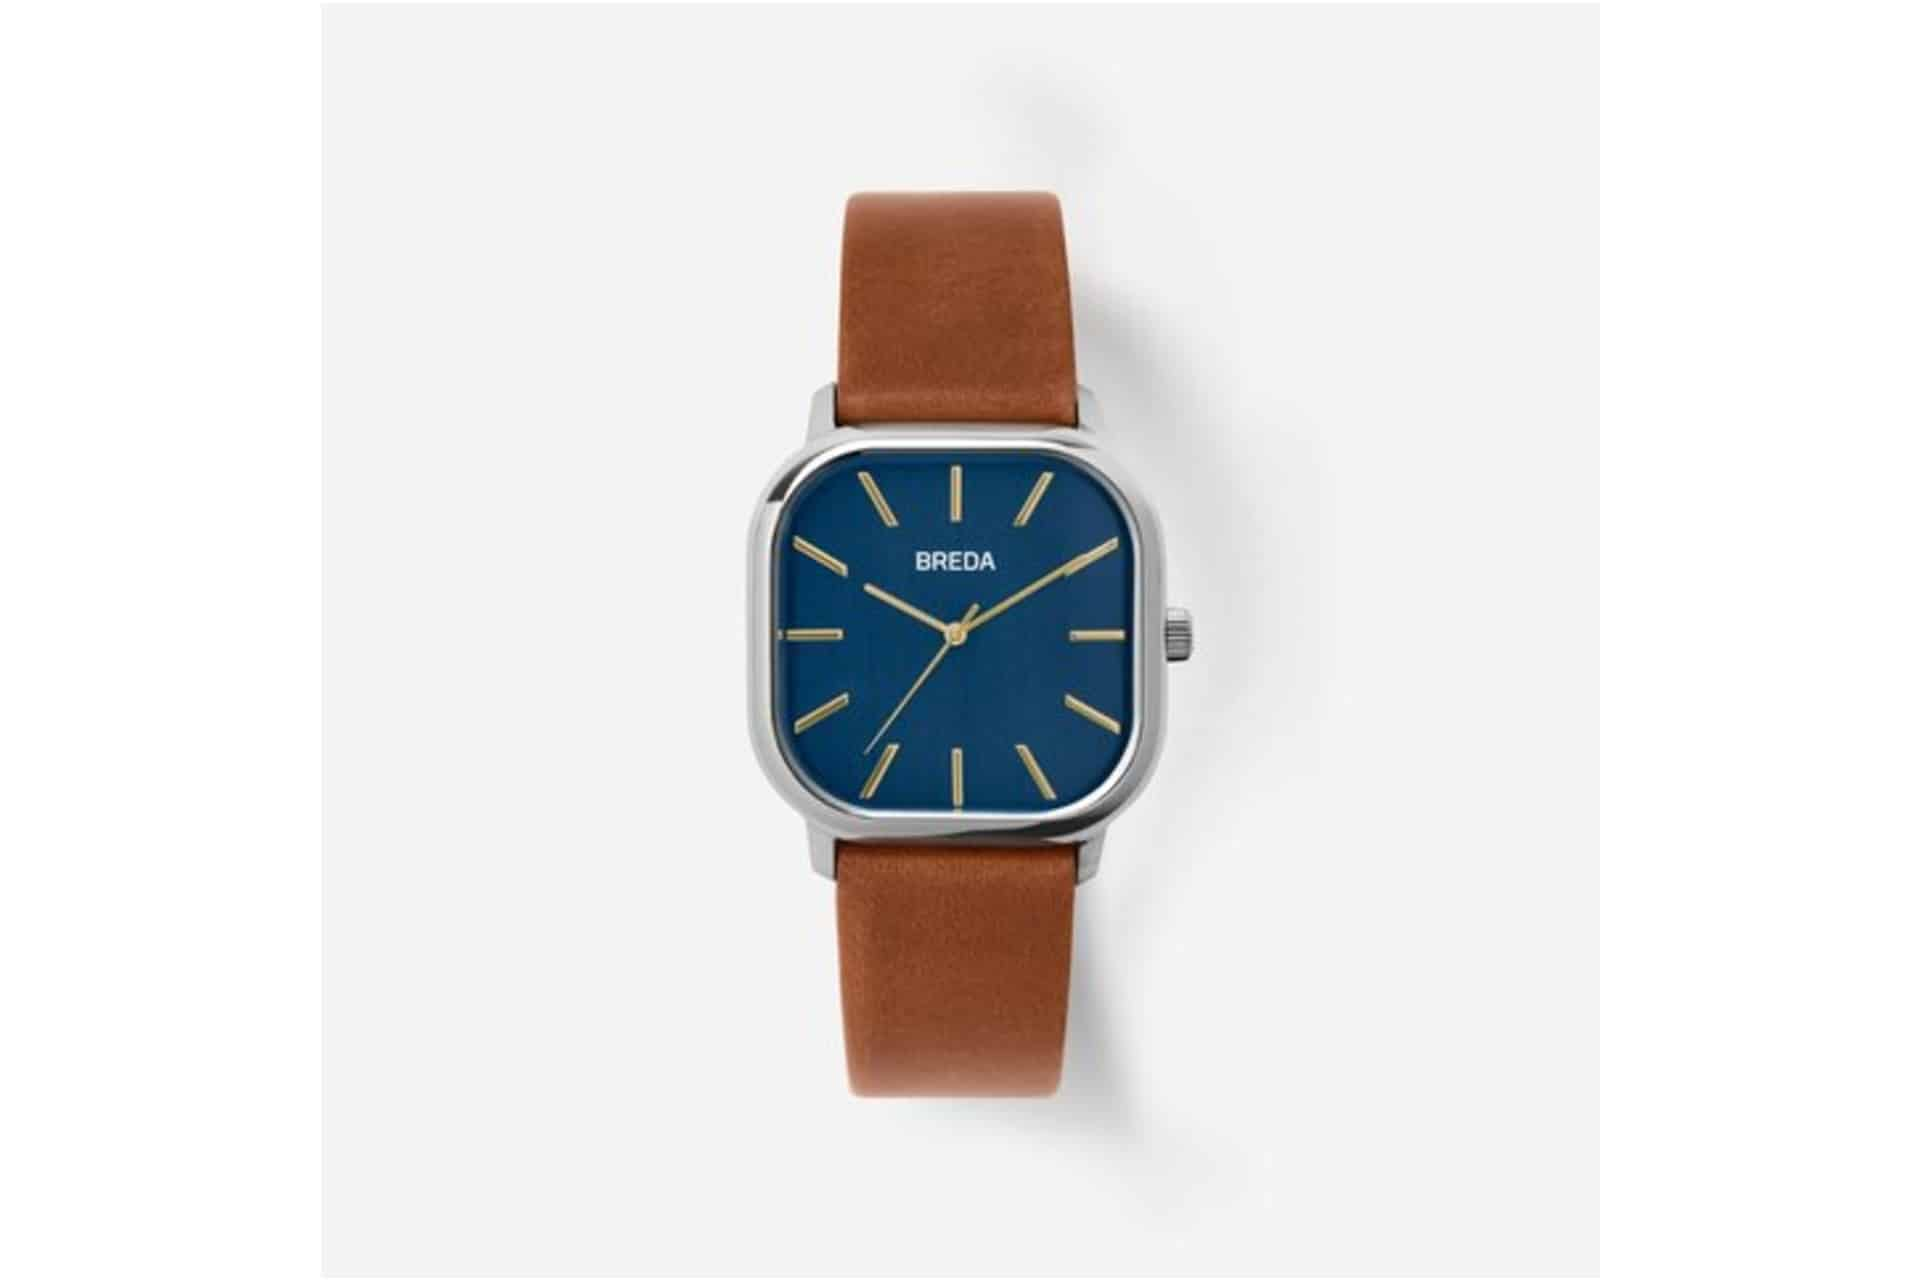 watch with a brown leather strap